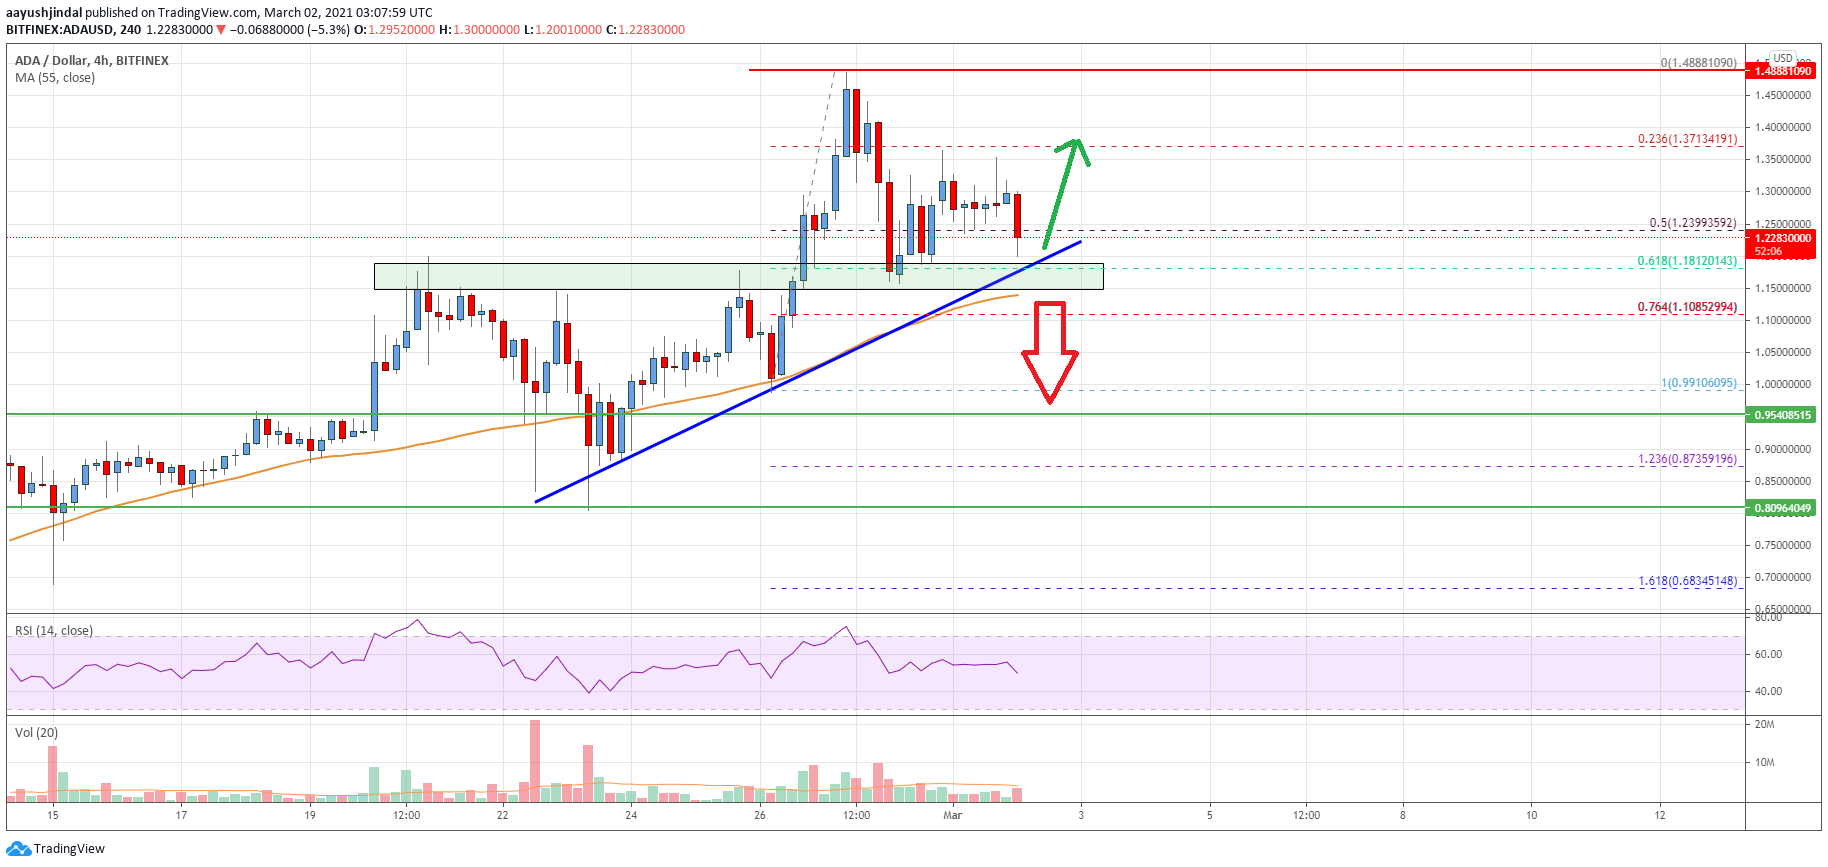 Cardano (ADA) Price Analysis: Why The Bulls Remain In Control